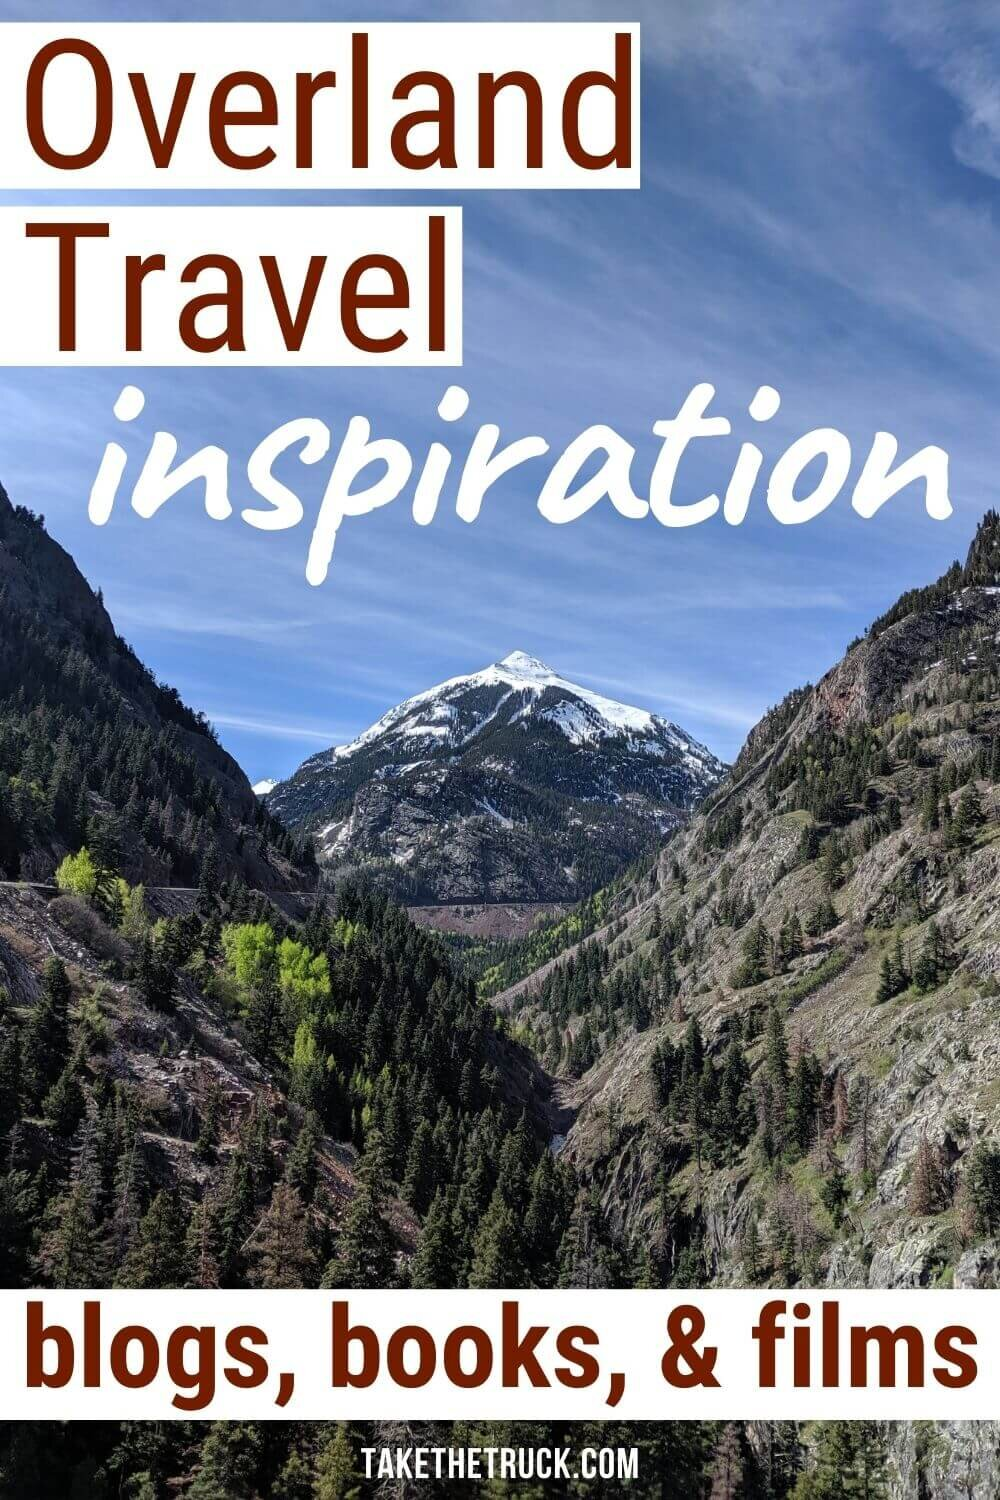 A list of overlanding ideas from blogs, books, and films made by full time overlanding families and other overlanding travelers. Full of overlanding destinations & routes and overlanding pictures.